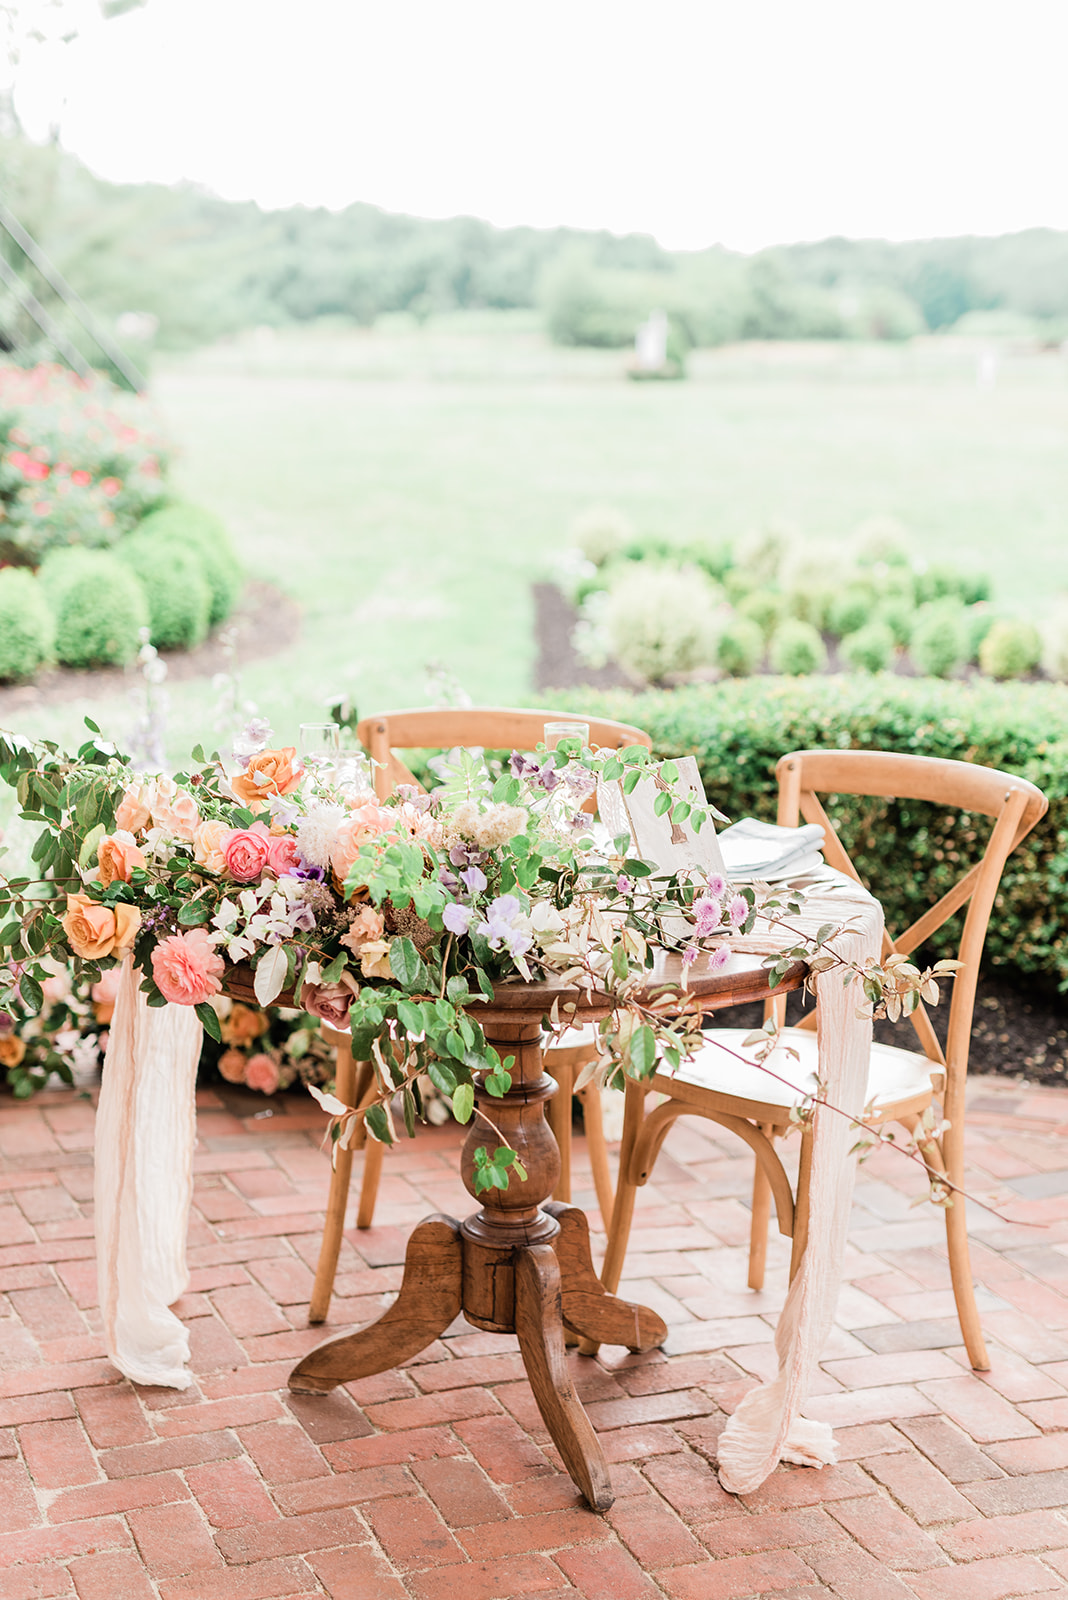 Social Distance Wedding Sweetheart Table